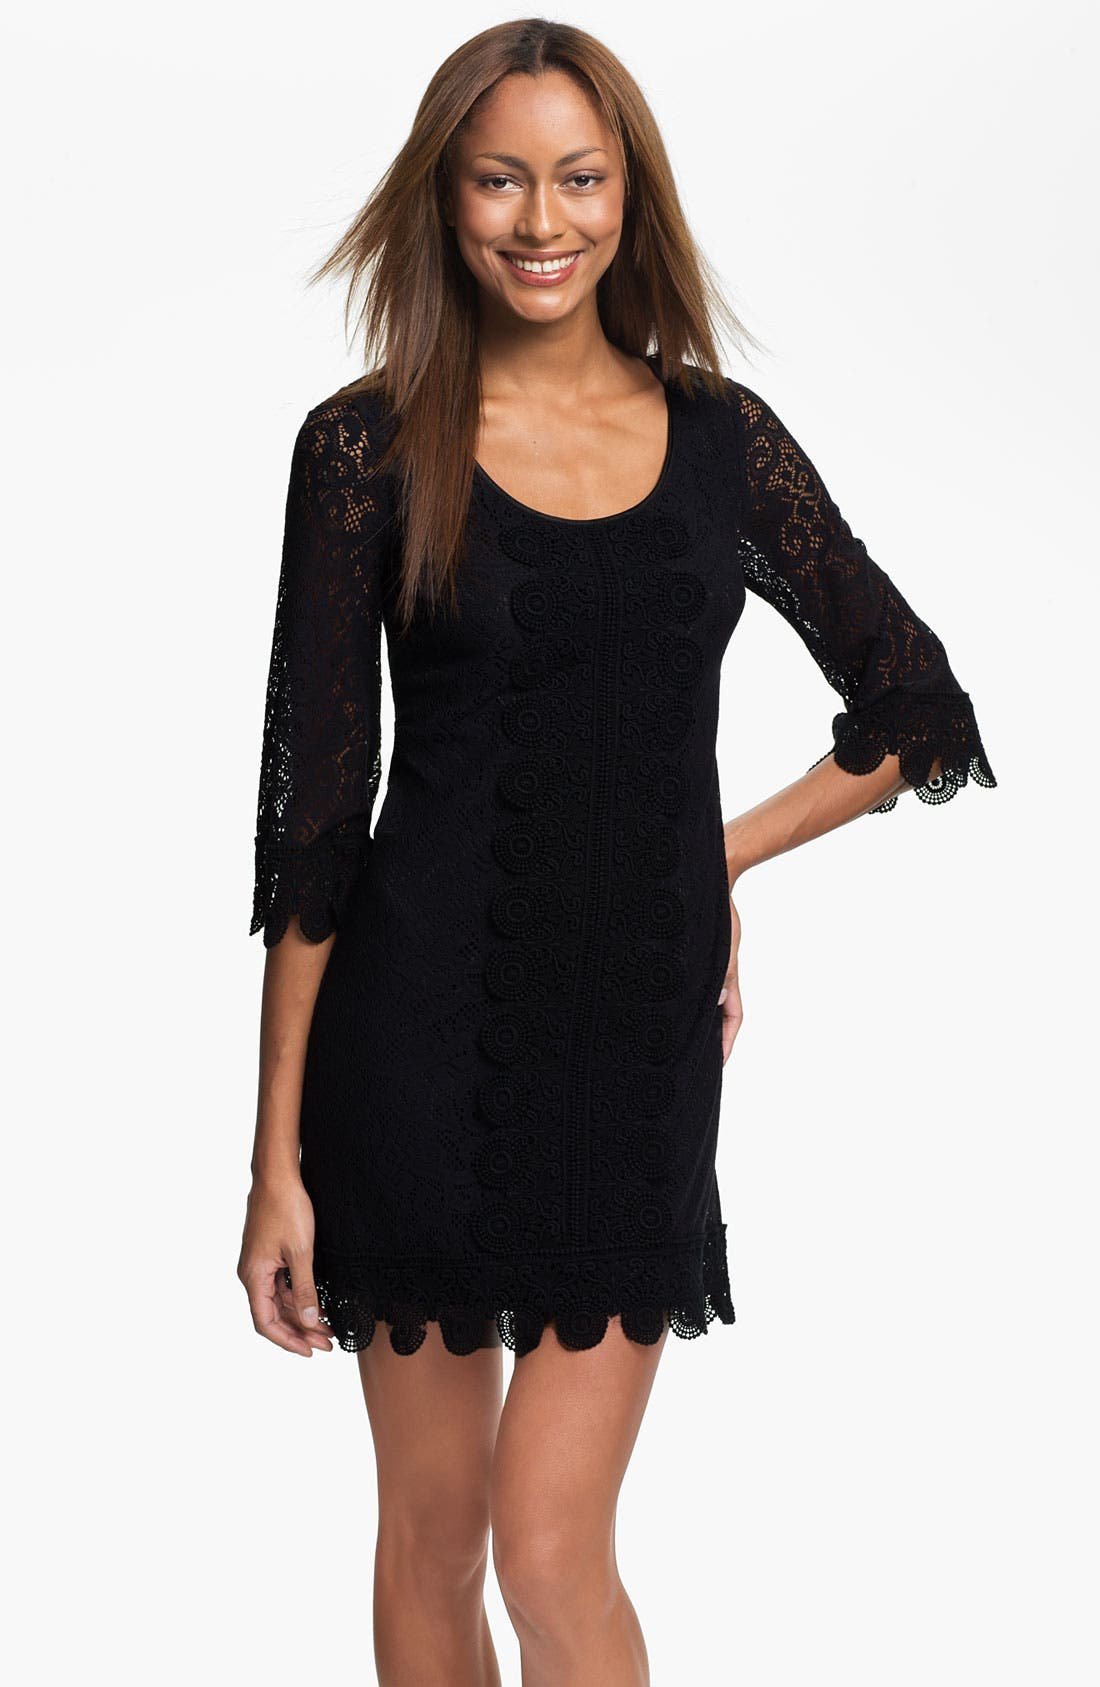 Alternate Image 1 Selected - Laundry by Shelli Segal Lace Overlay Shift Dress